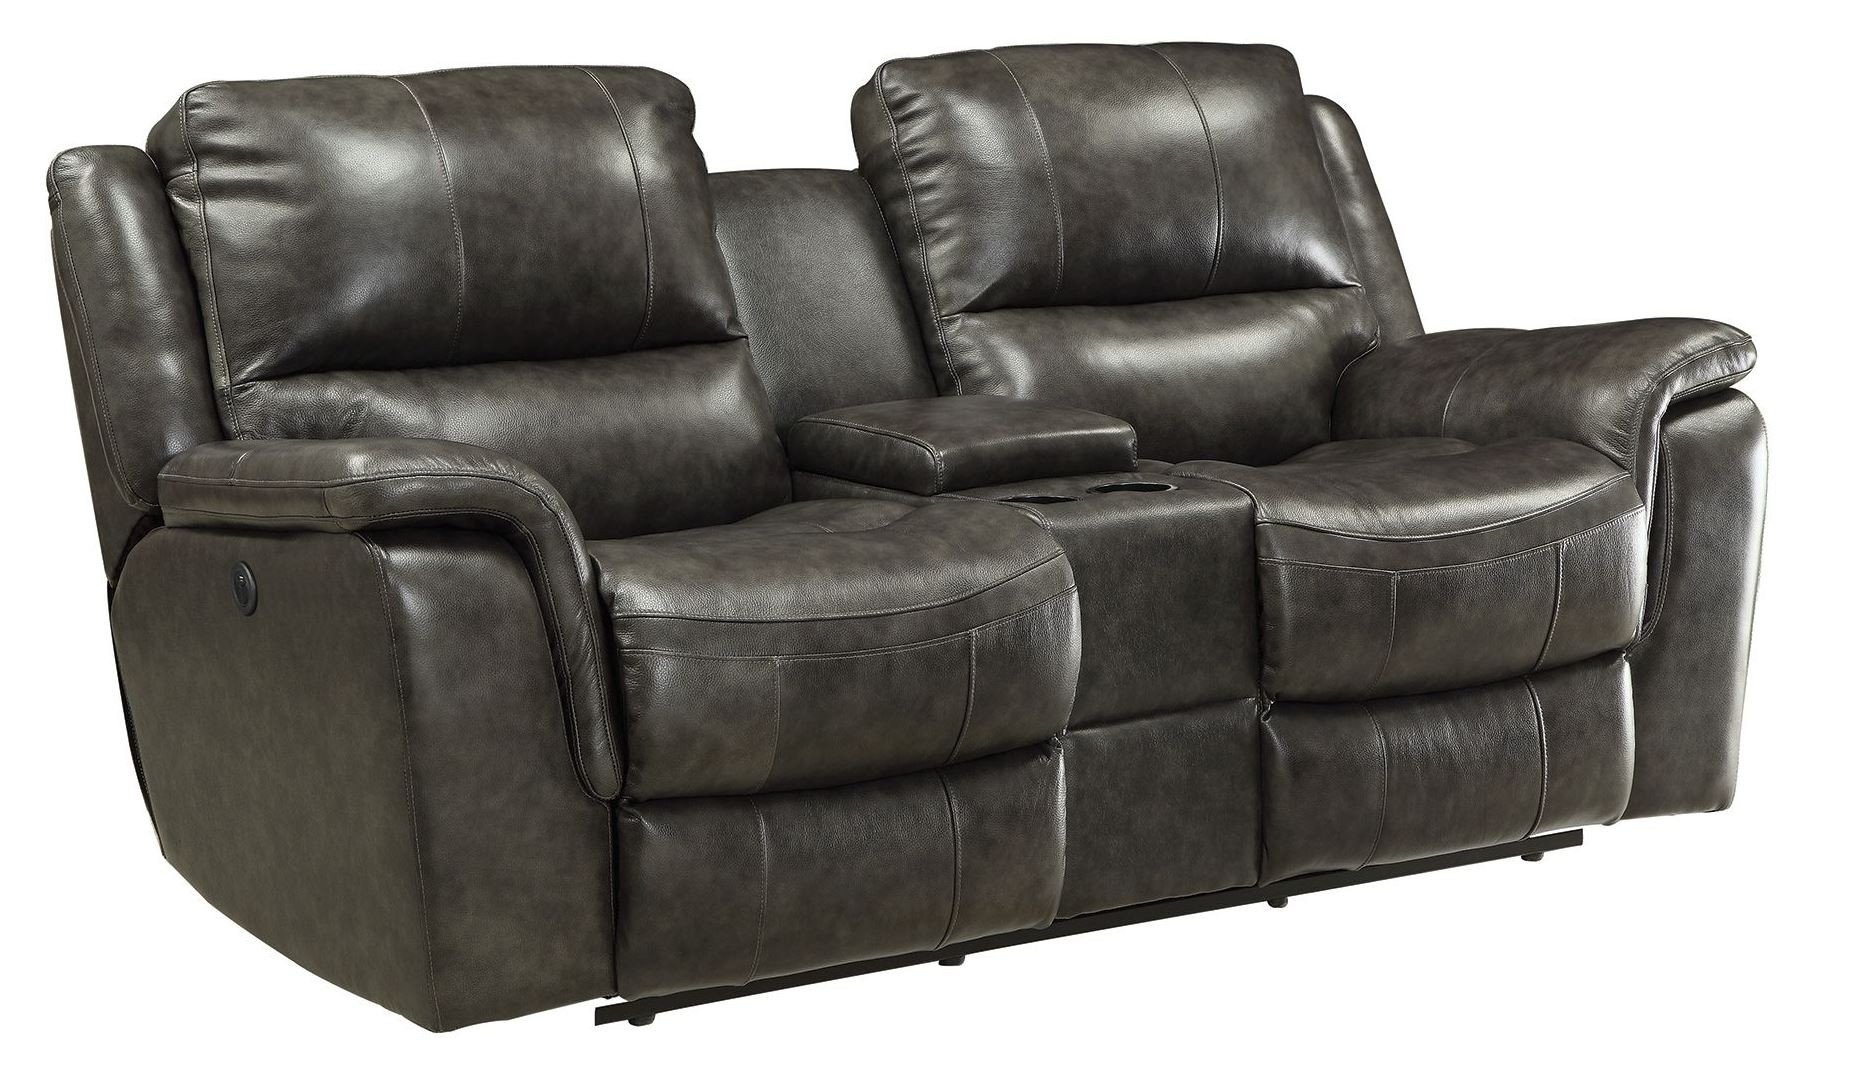 Wingfield Charcoal Power Reclining Loveseat From Coaster 601822p Coleman Furniture